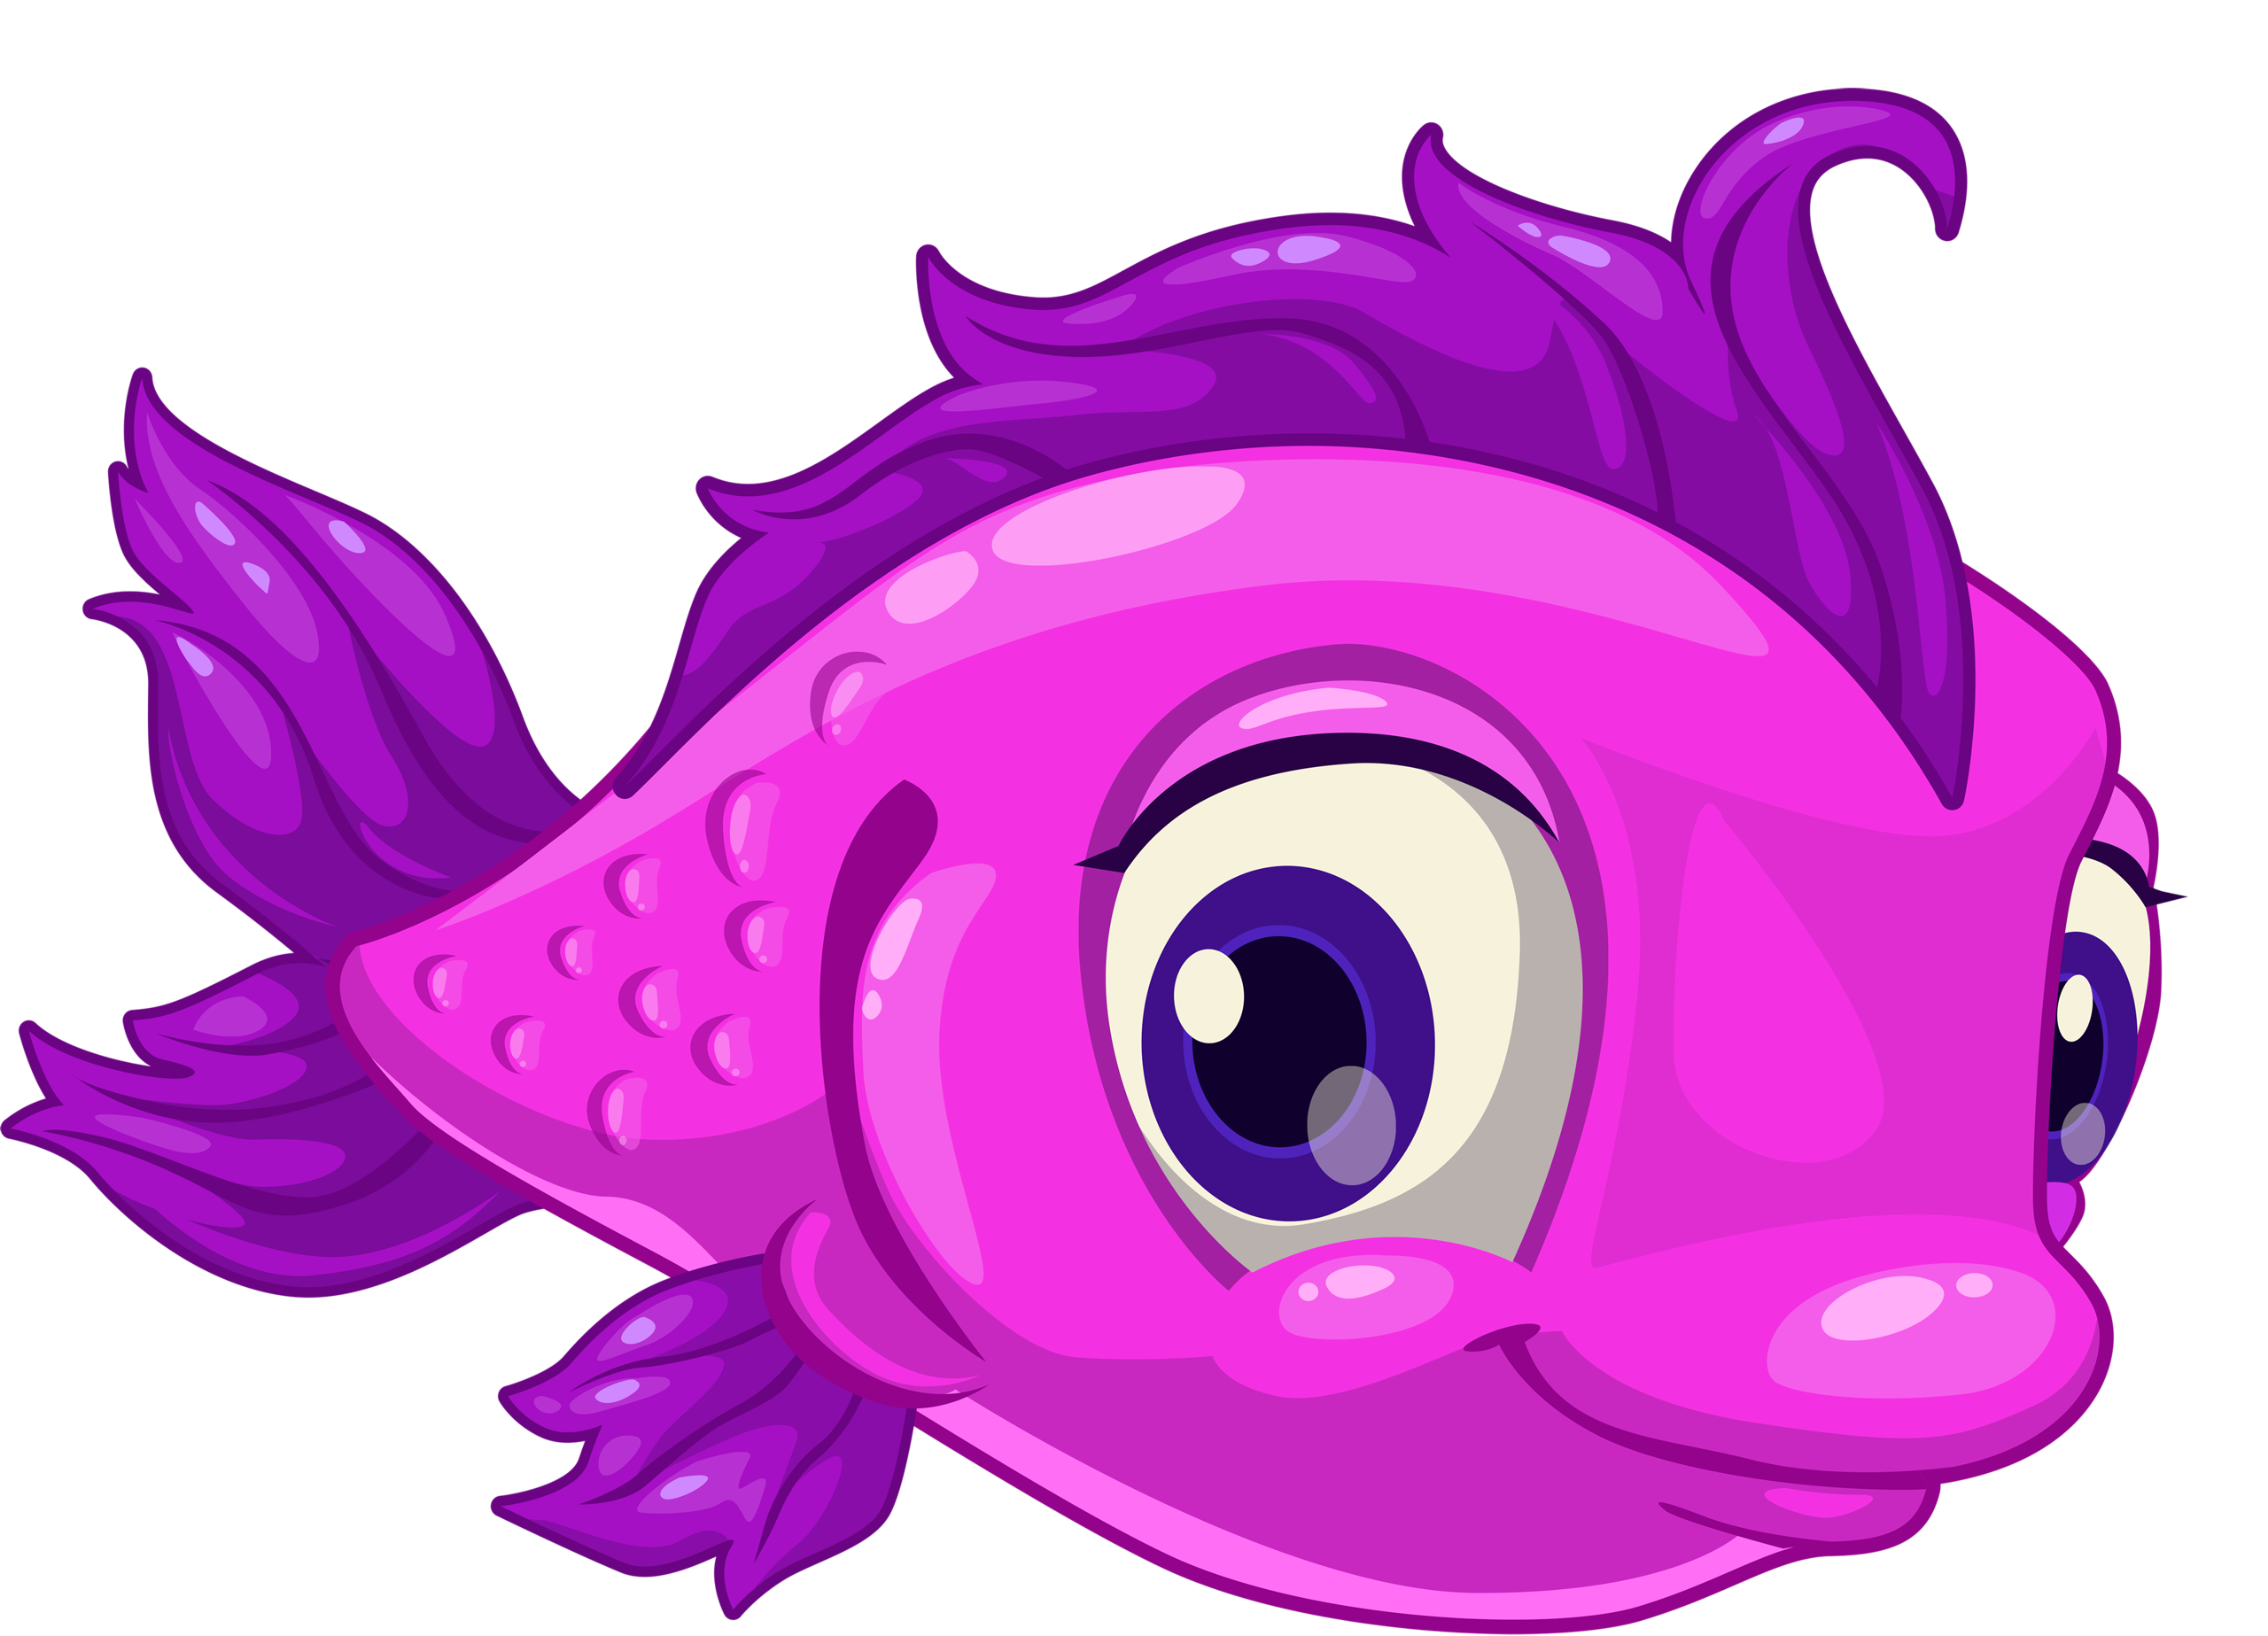 Purple fish and worm clipart png freeuse library shutterstock_280678795.png | Pinterest | Fish, Sea clipart and Clip art png freeuse library